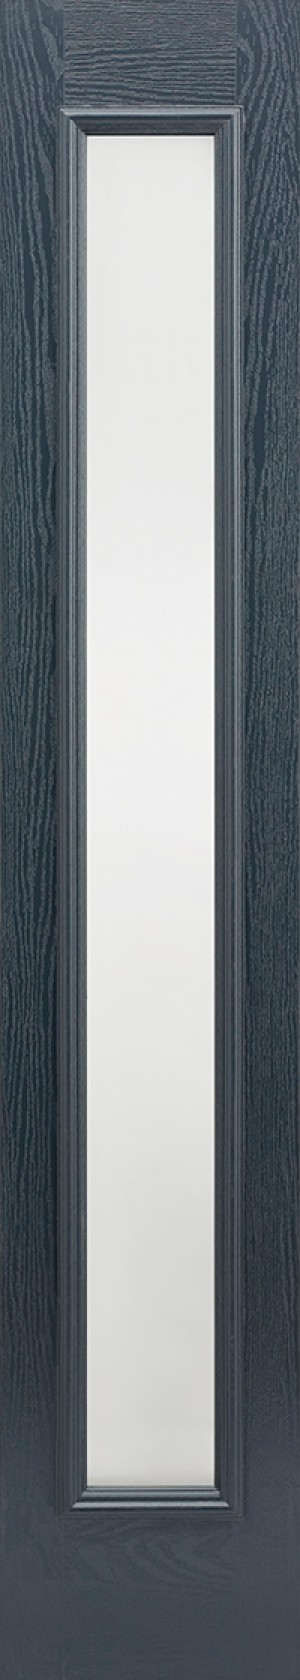 "LPD - External Door - GRP Sidelight Grey Glazed 1L Frosted 2032 x 356 (14"")  GRPGRESLFRO"